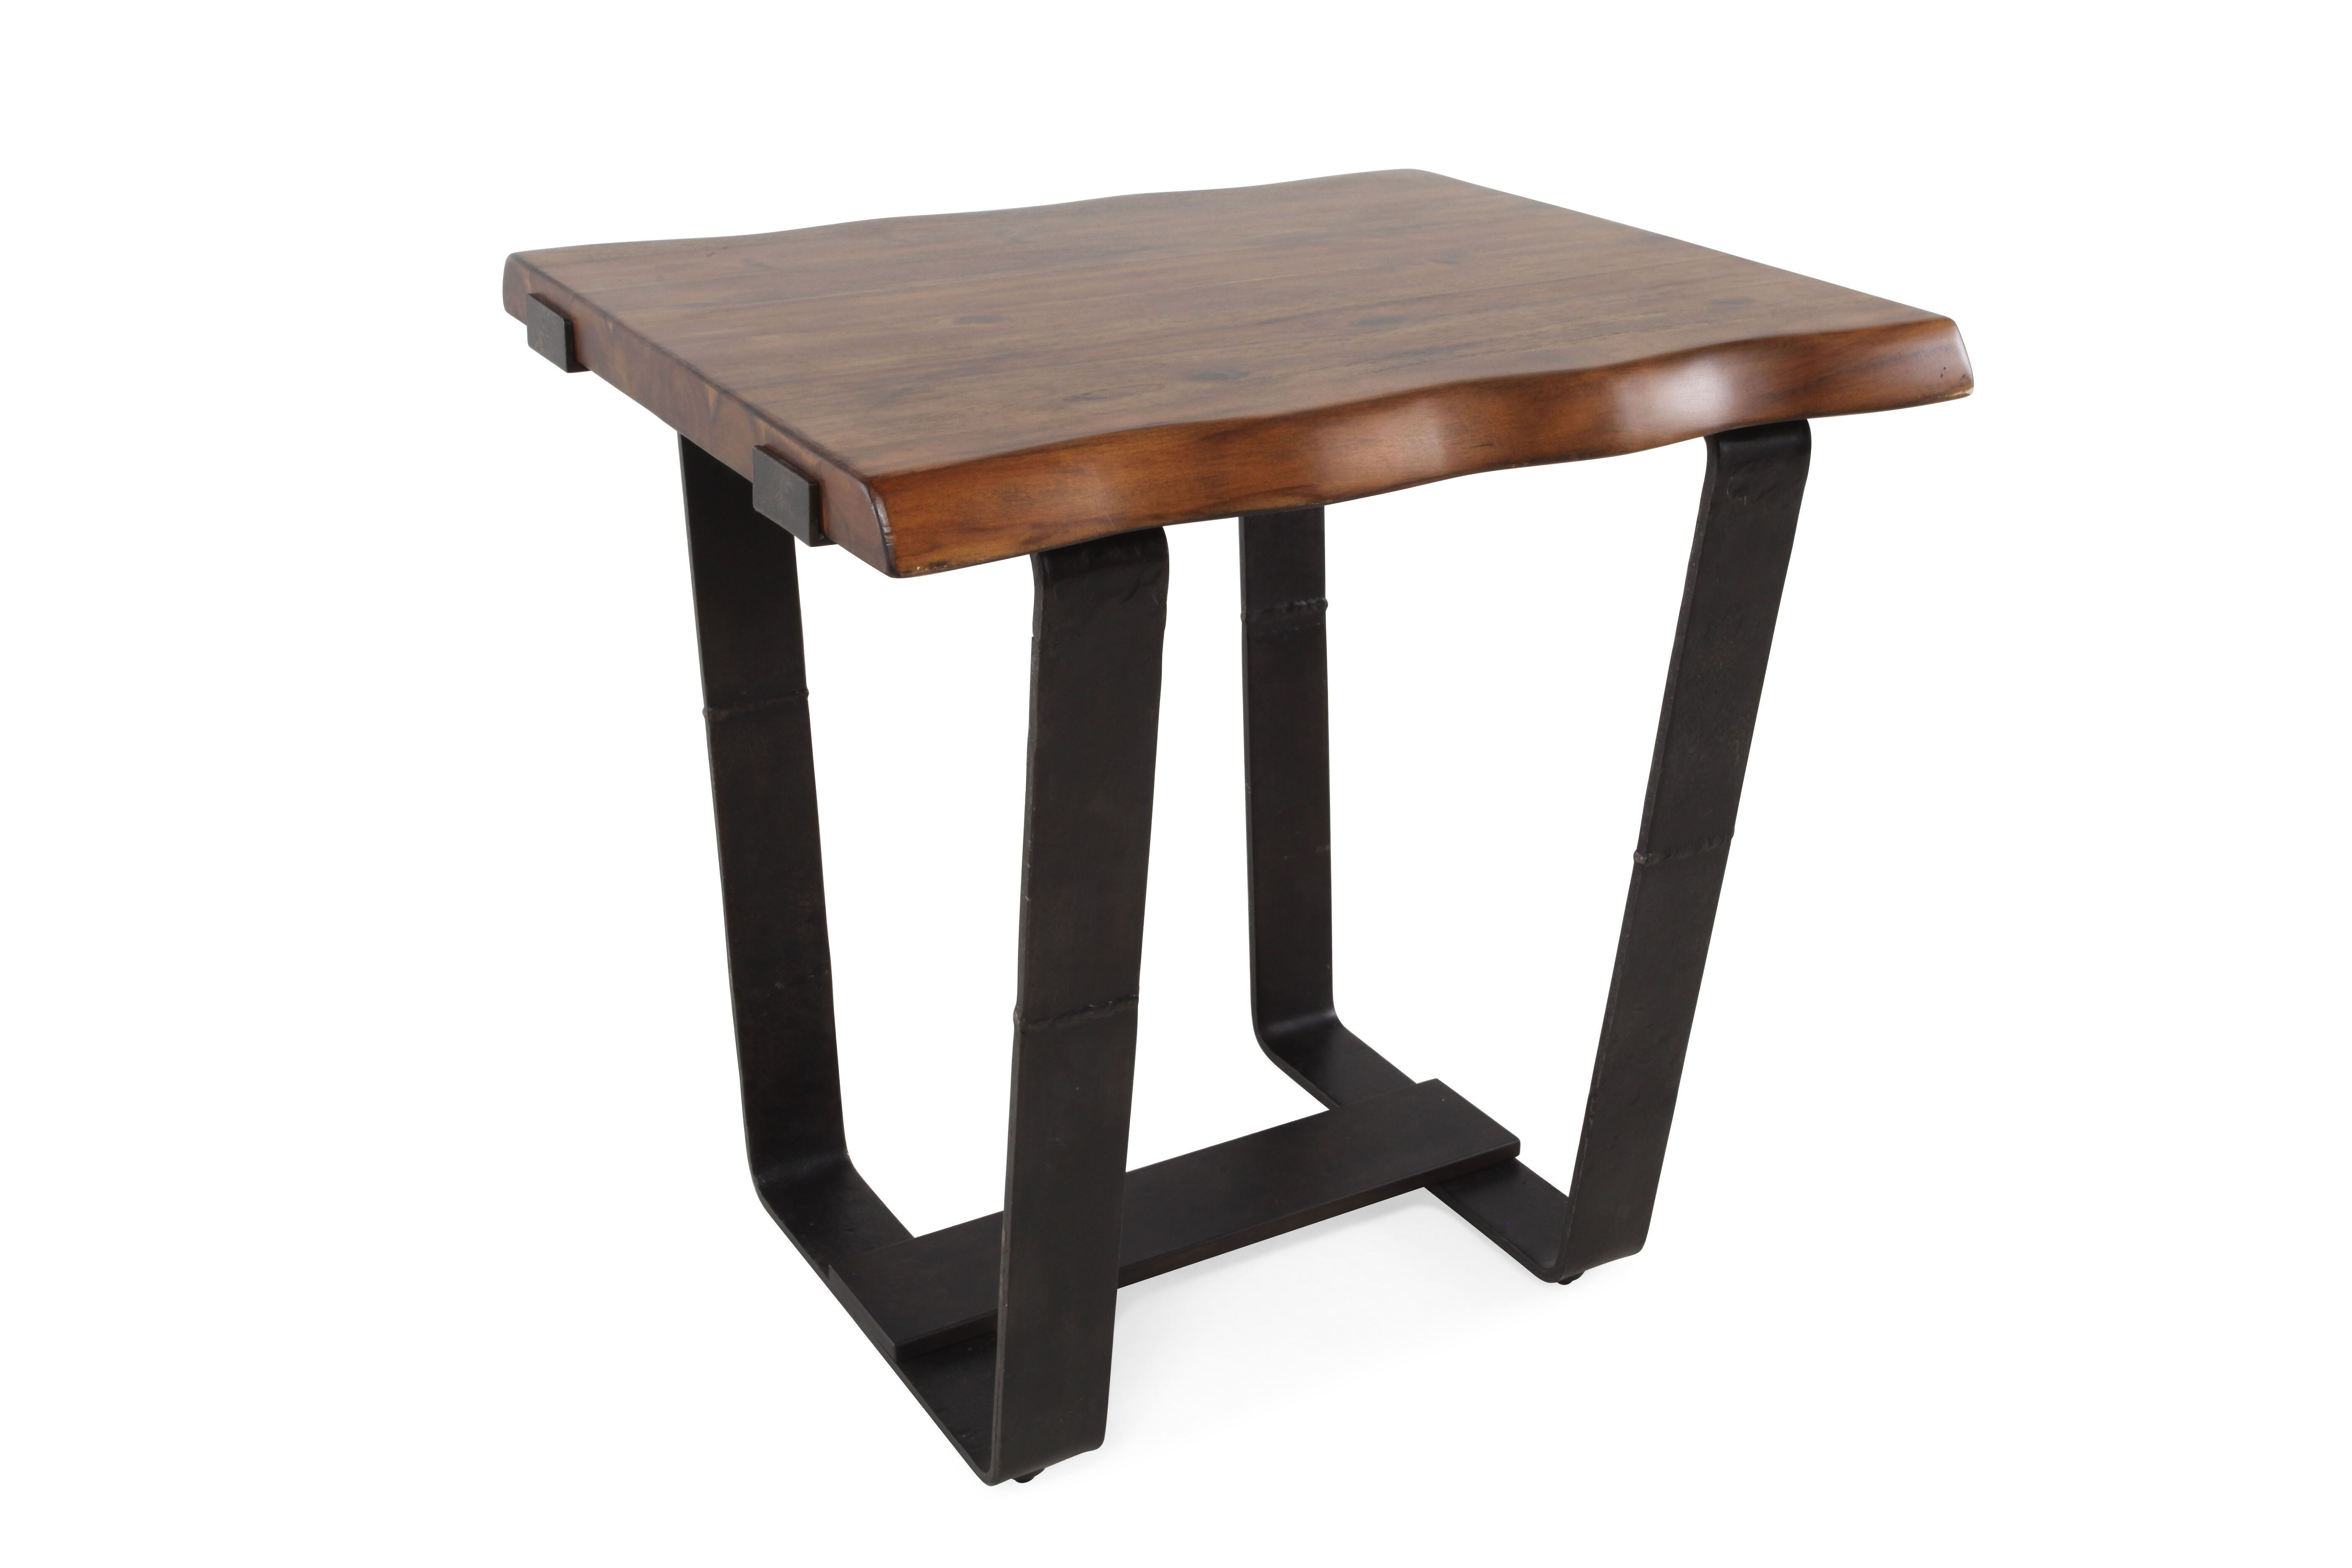 Plank-Top Solid Wood End Table In Brown